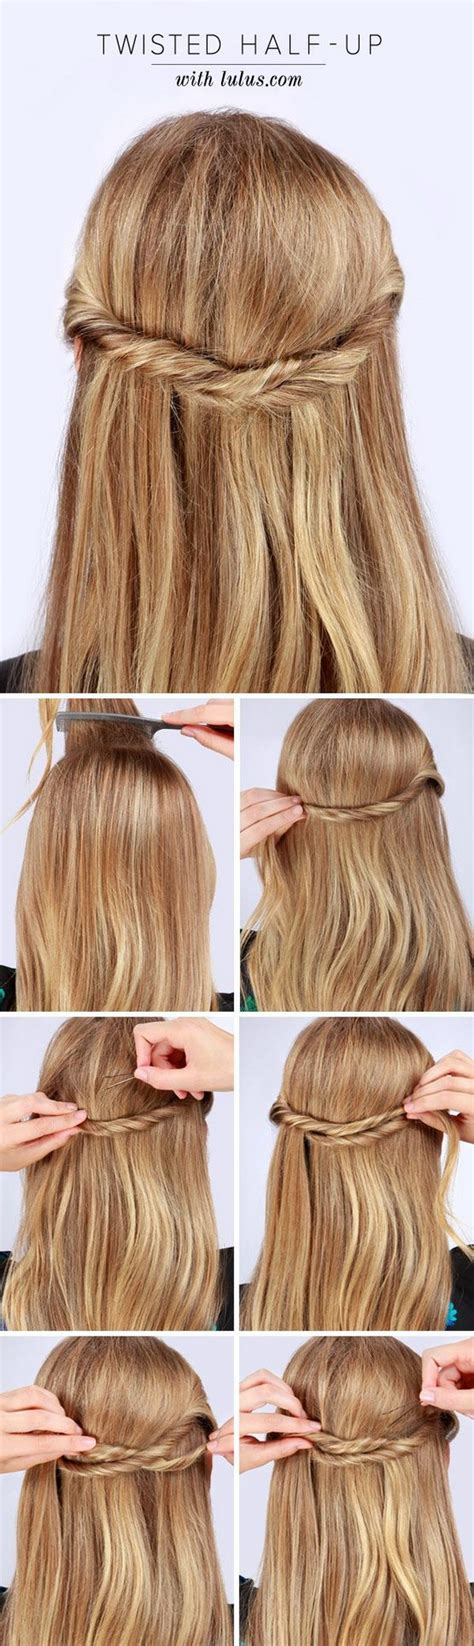 hairstyles half up half down how to 55 stunning half up half down hairstyles